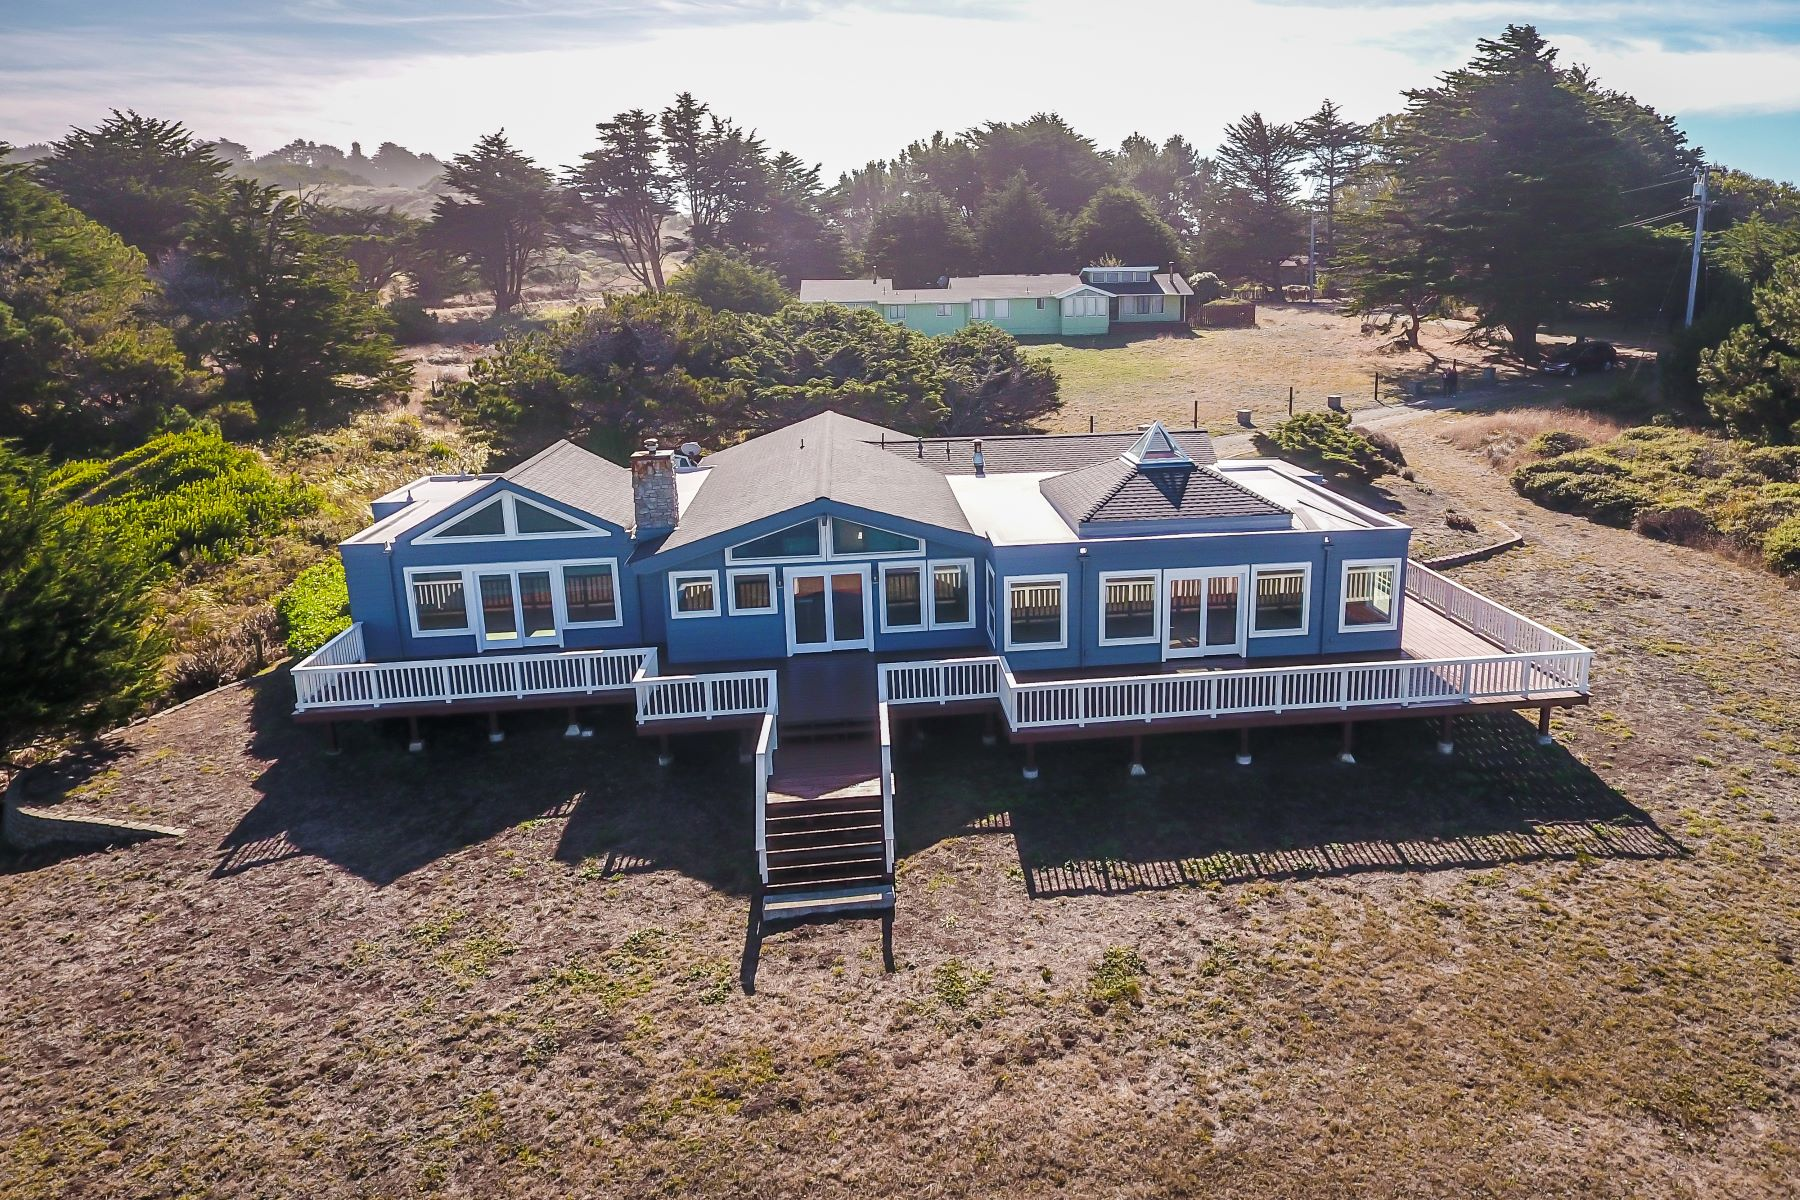 Single Family Homes for Sale at Oceanfront Oasis 2725 Seaside Court Albion, California 95430 United States